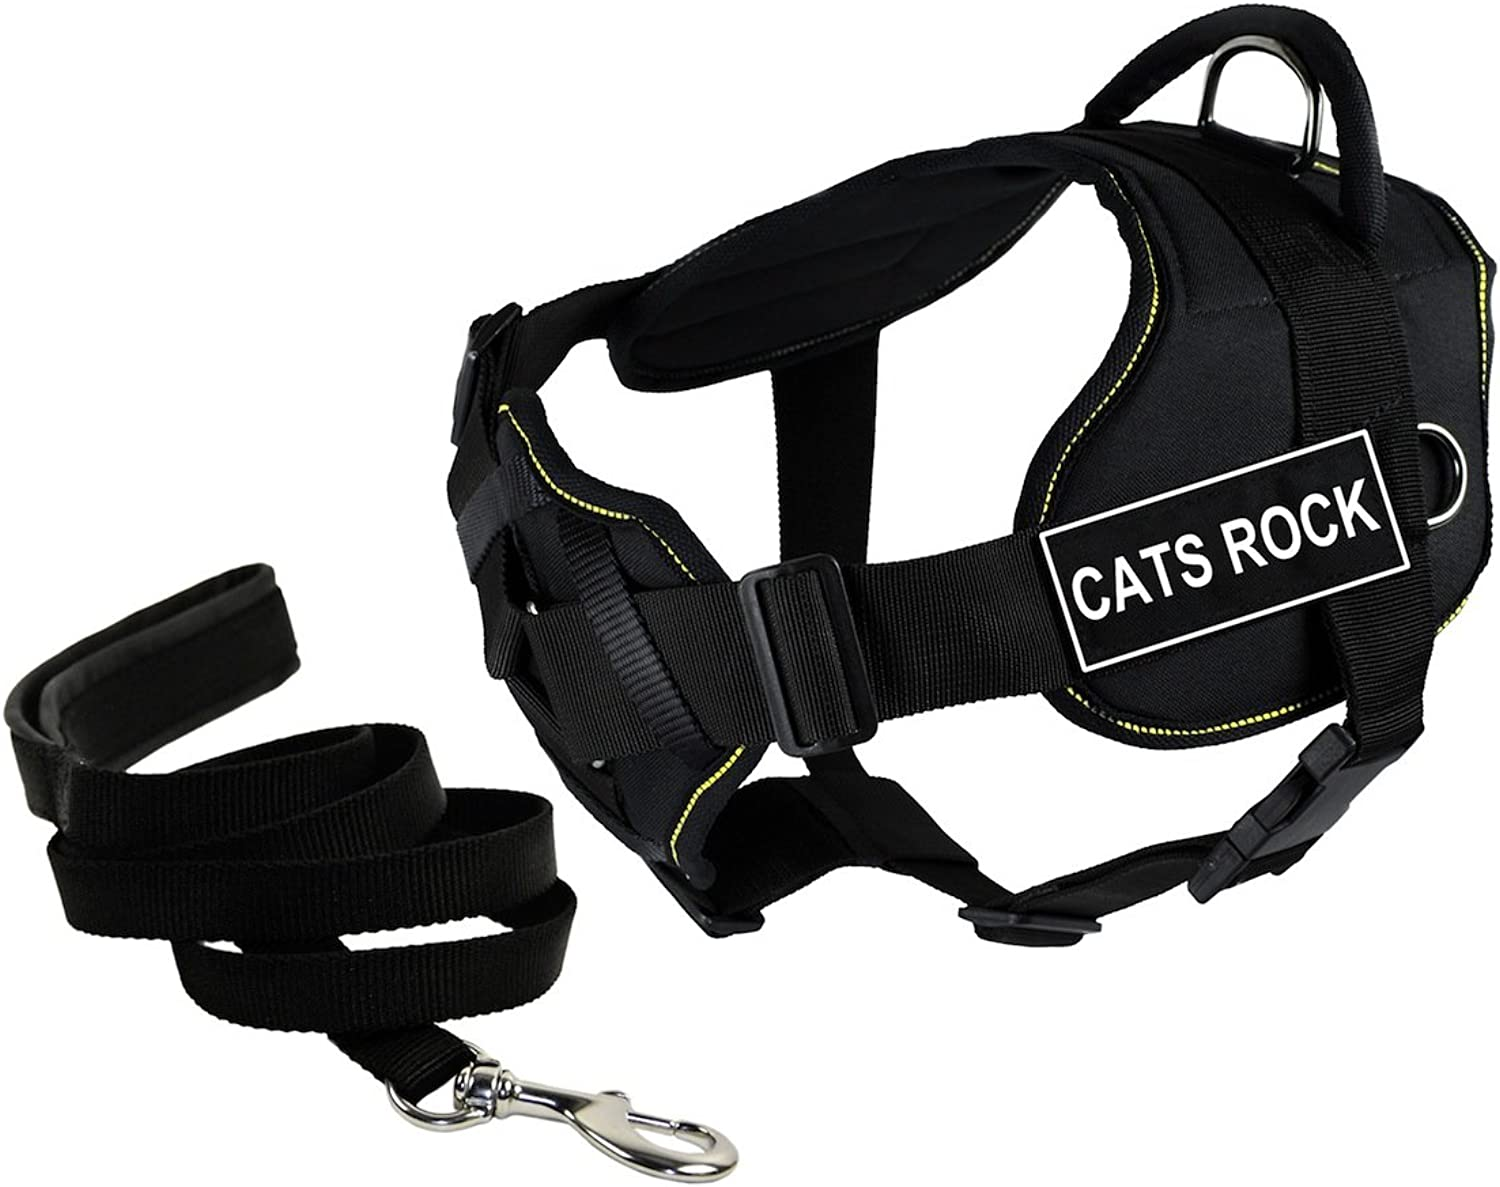 Dean & Tyler's DT Fun Chest Support CATS ROCK Harness, Medium, with 6 ft Padded Puppy Leash.